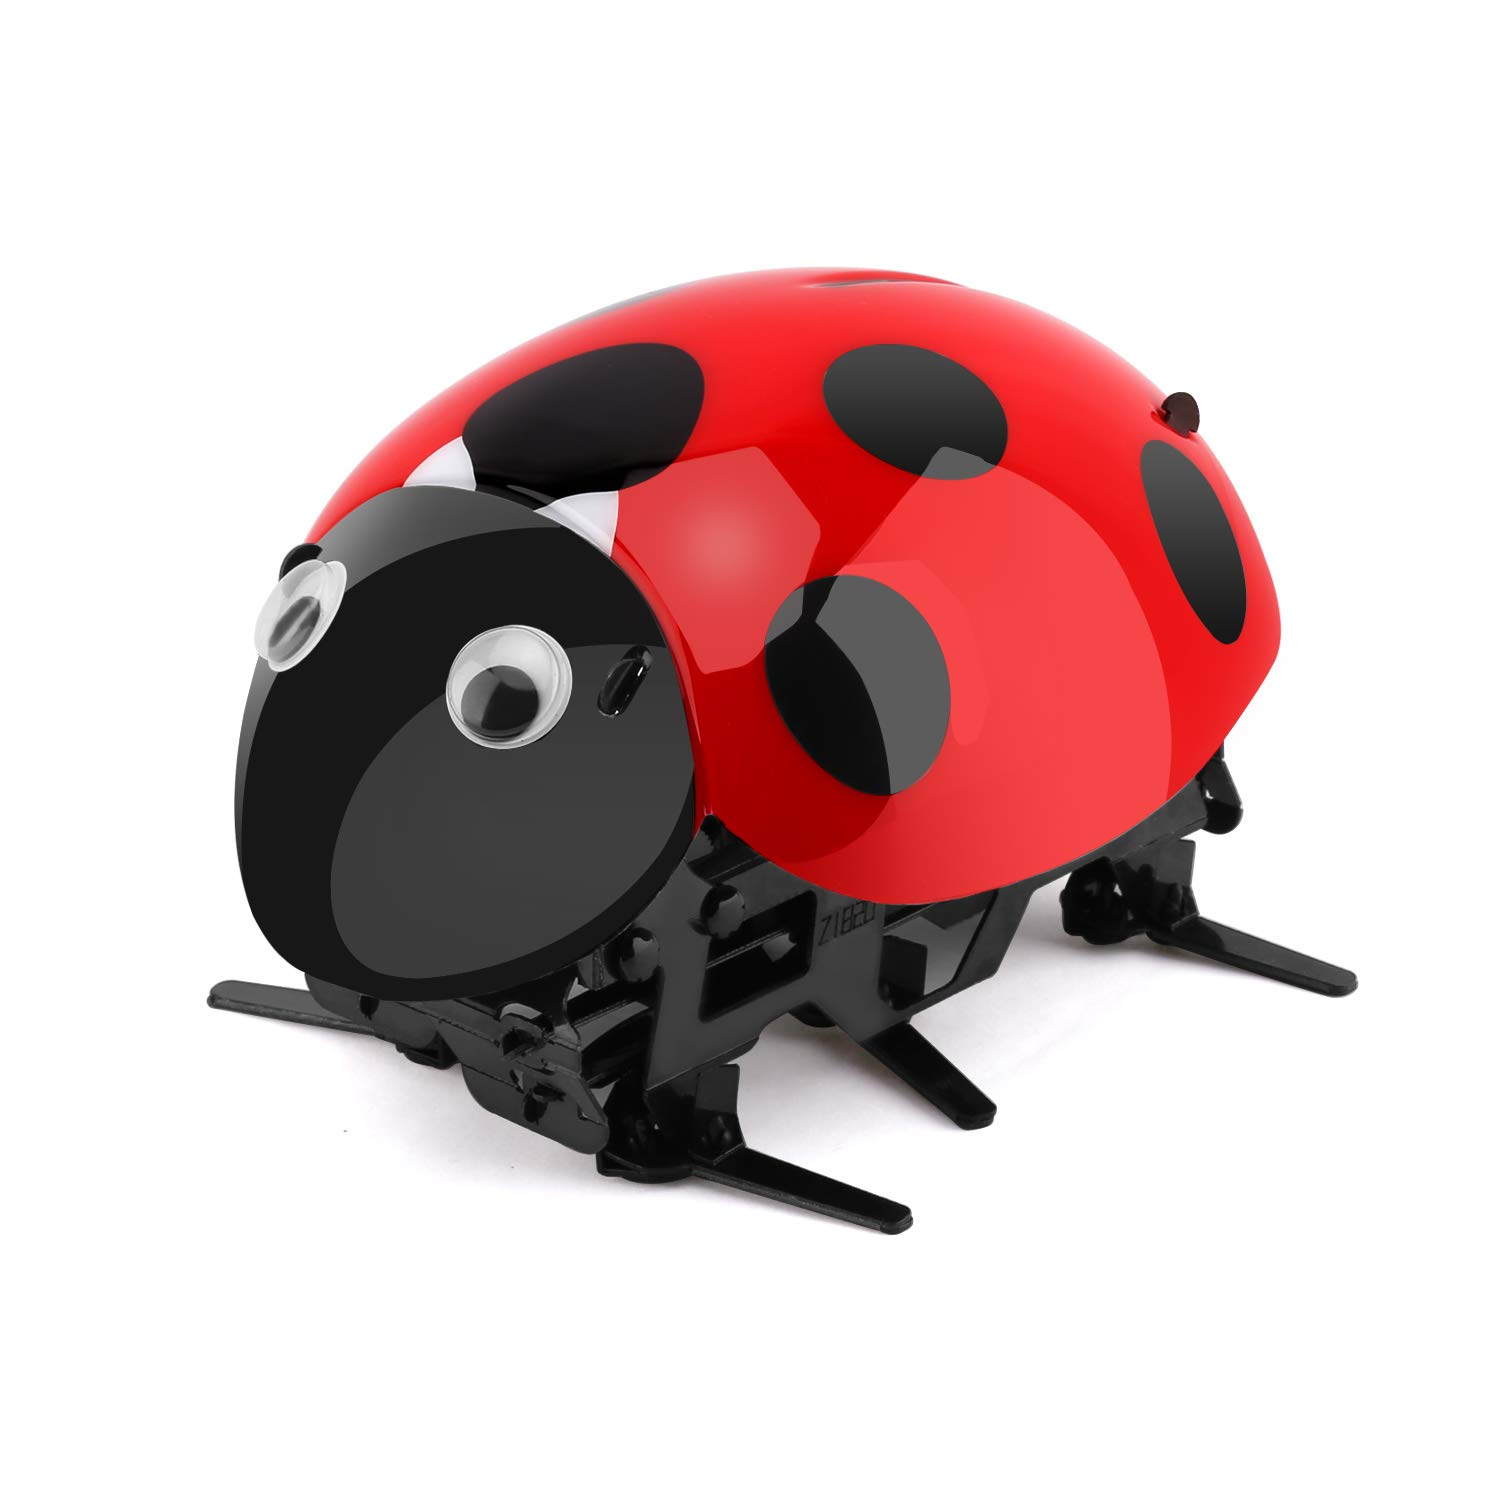 Zooawa Intelligent Ladybug Robot Wireless Remote Winged Insects Made From Old Computer Circuit Boards And Electronics Control Electronic Toy Rc Bionic Insect Digital Pet For Kids Over 7 Years